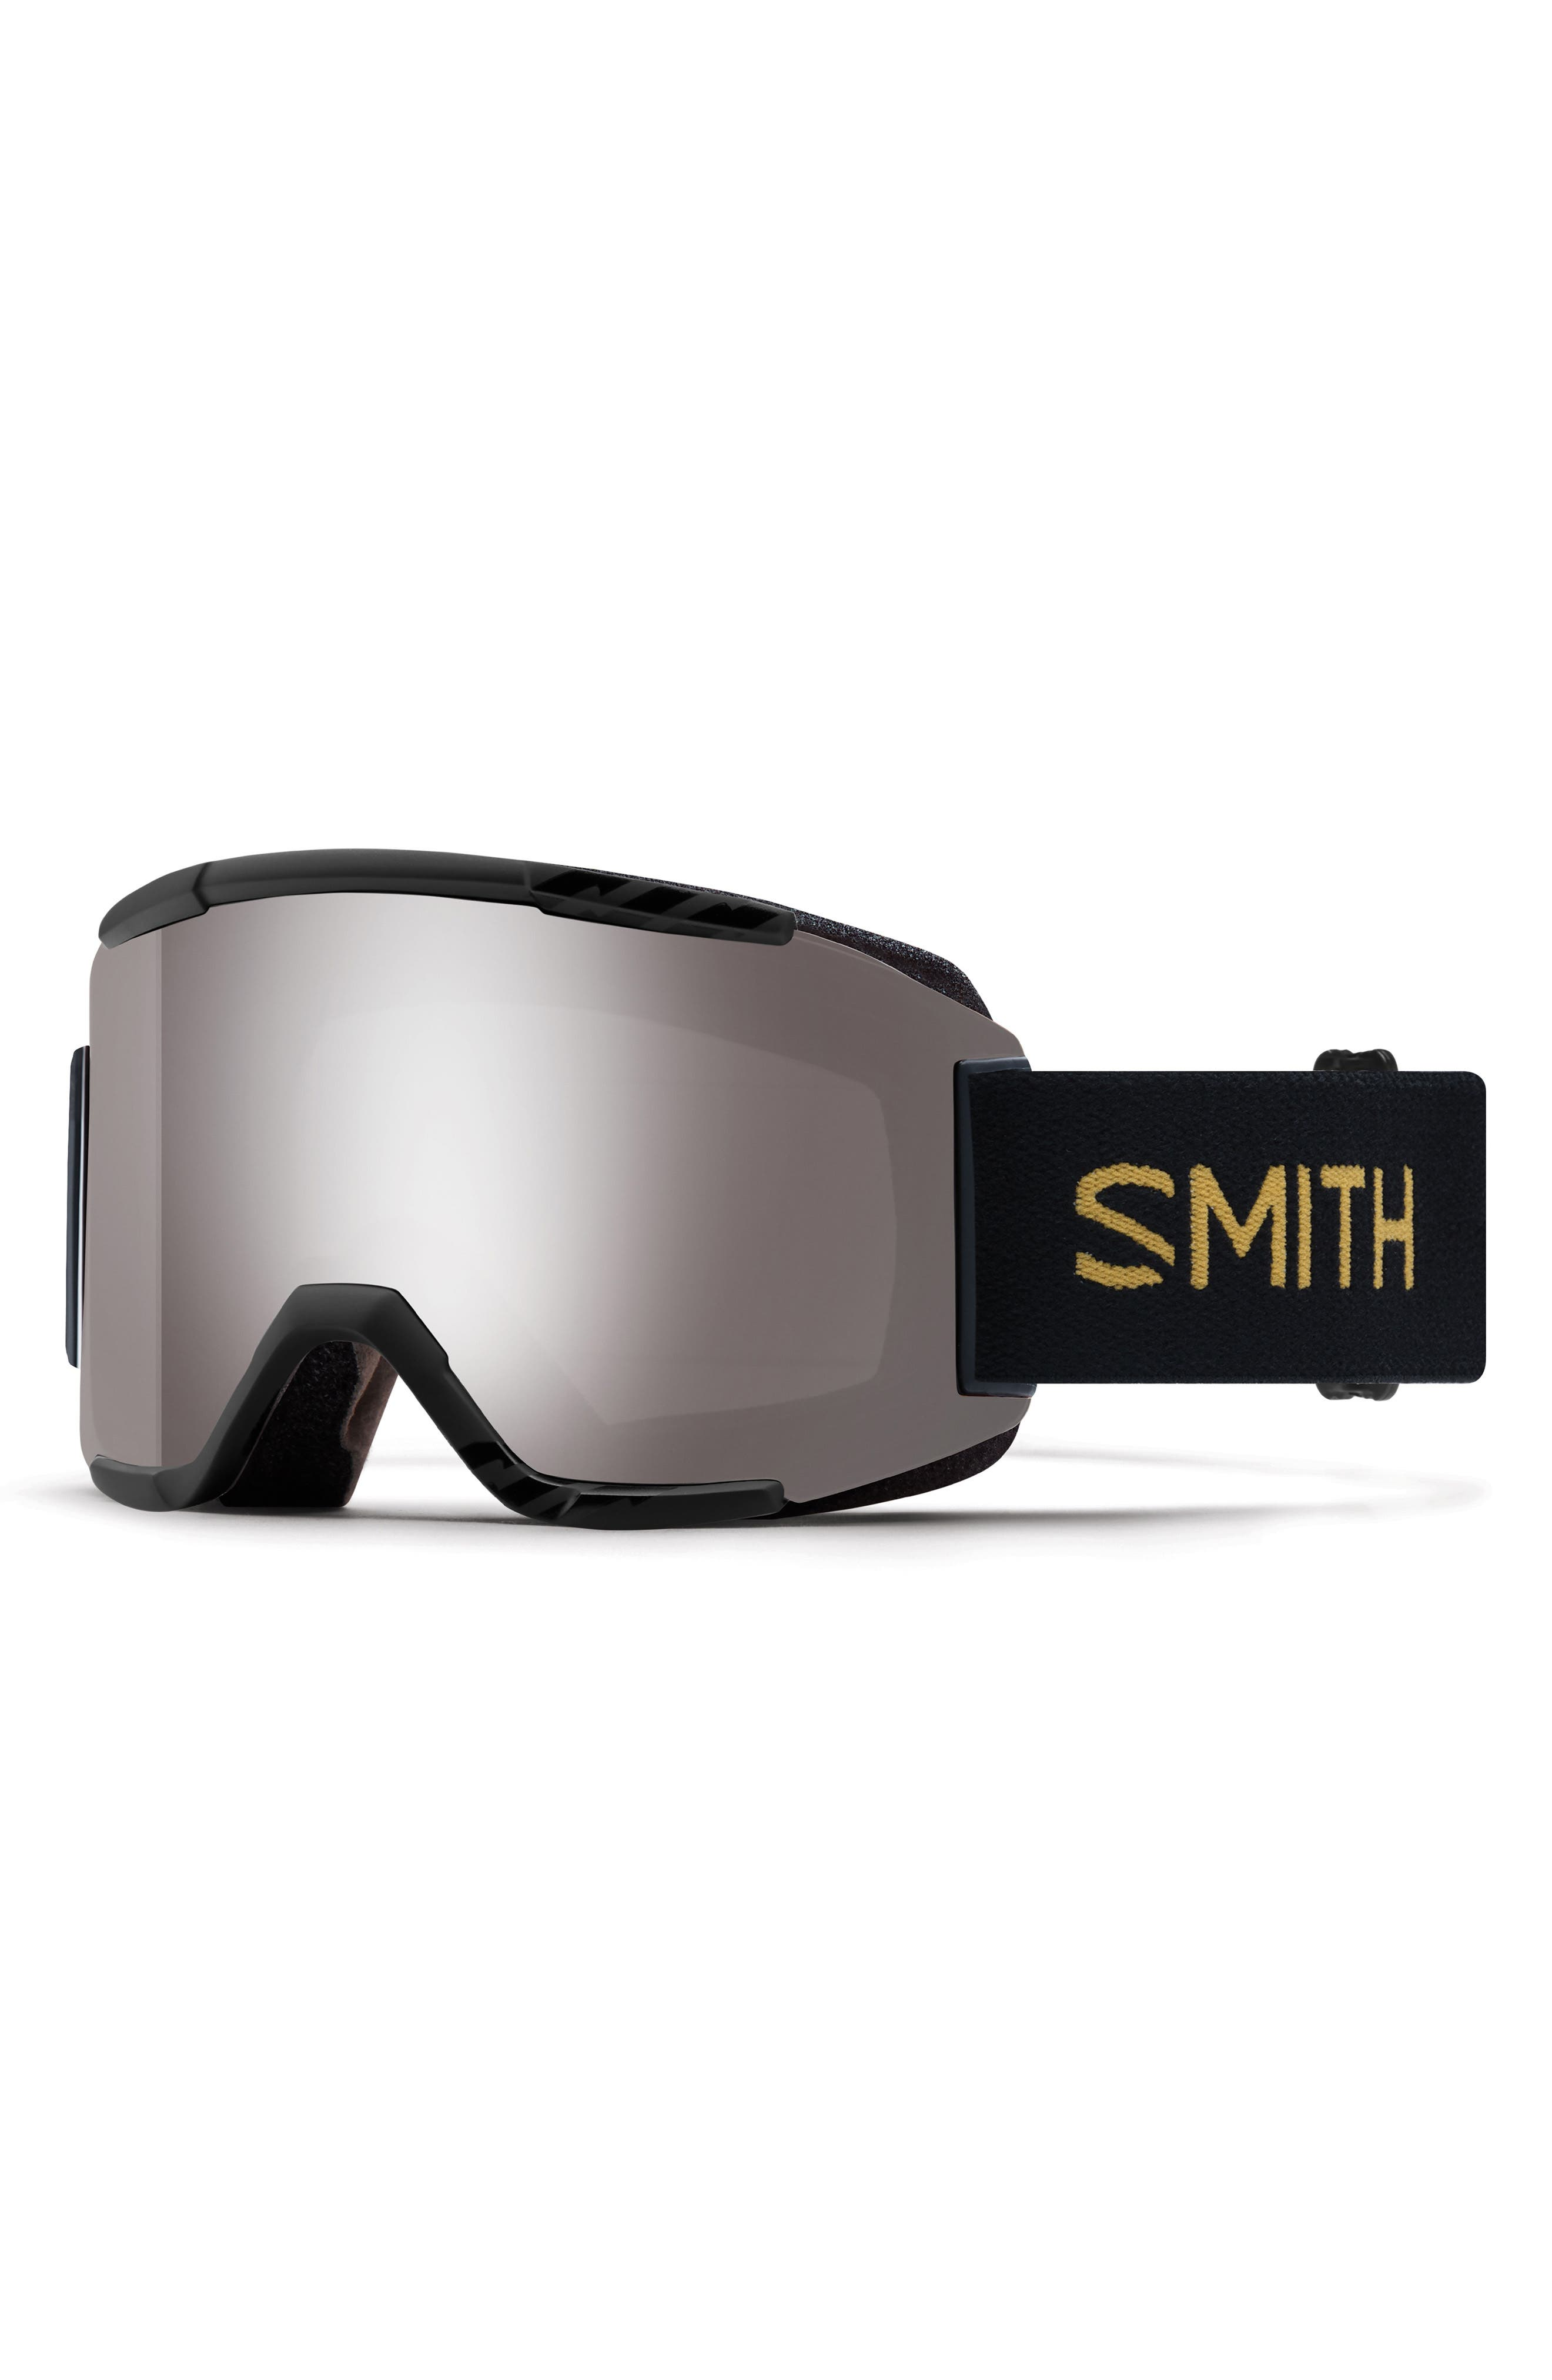 Squad Chromapop 180mm Snow Goggles,                         Main,                         color, 001